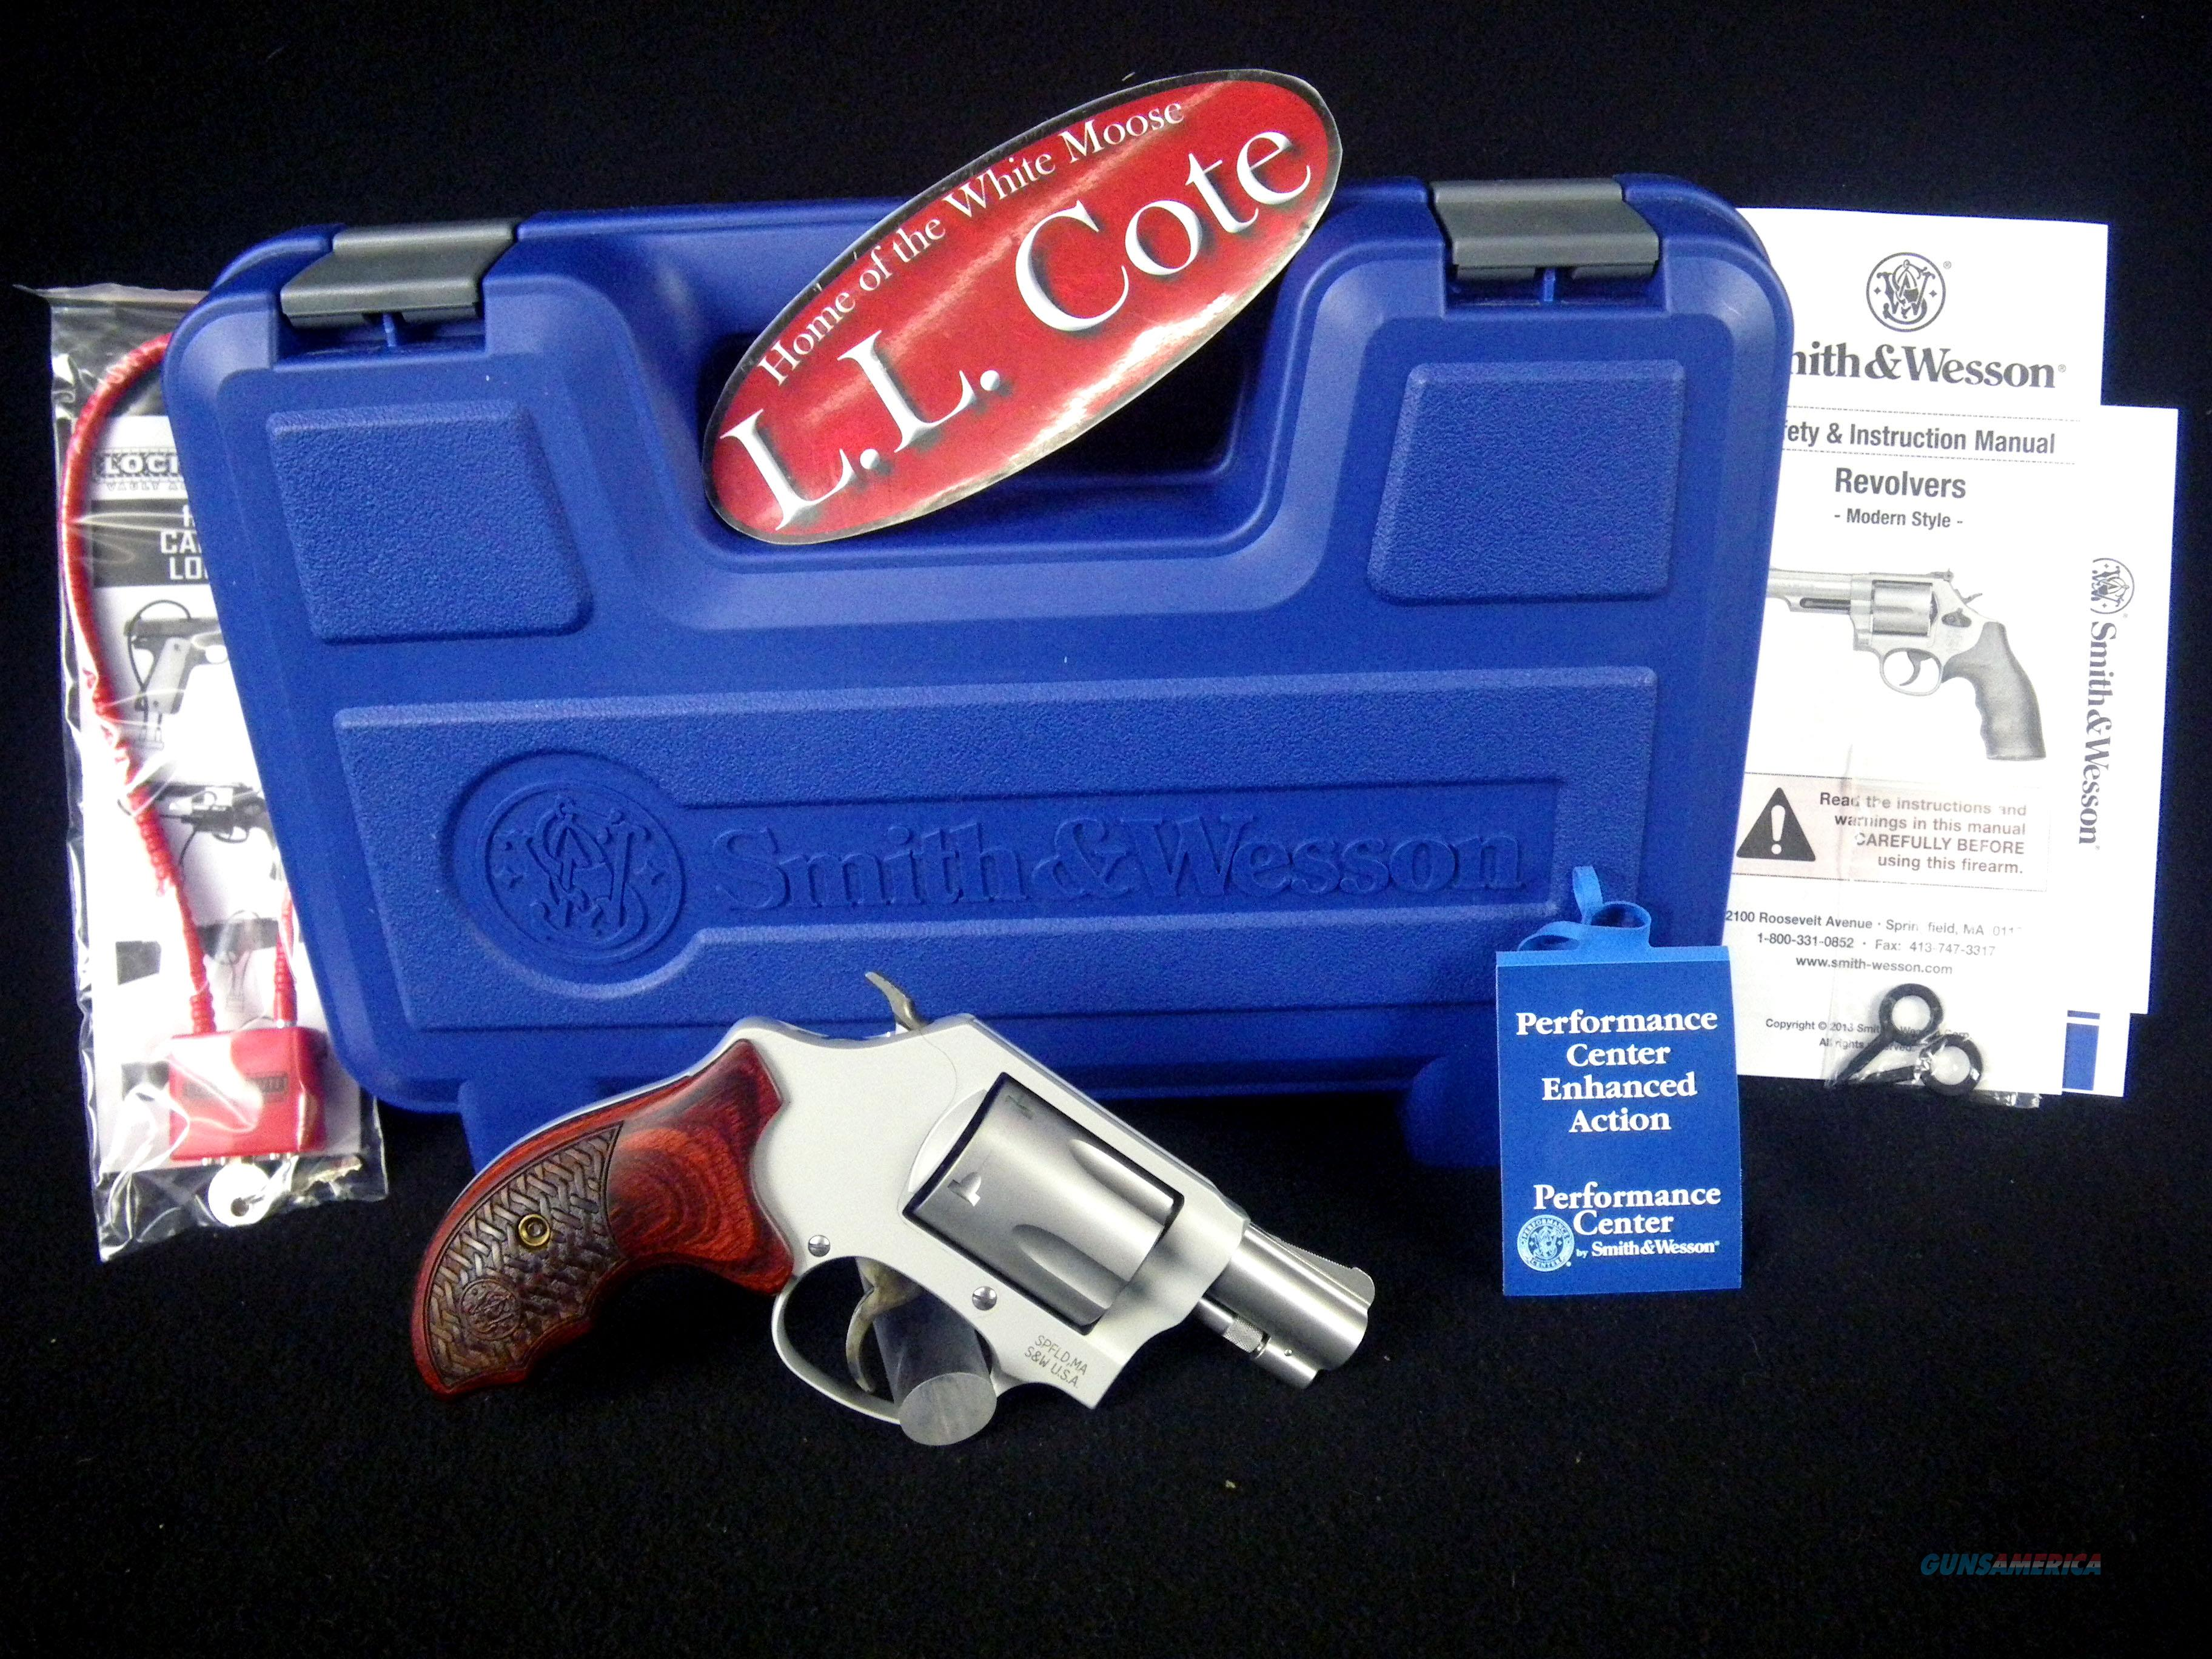 """Smith & Wesson Perf Center 637 38Spl+P 1.875"""" NEW 170349  Guns > Pistols > Smith & Wesson Revolvers > Performance Center"""